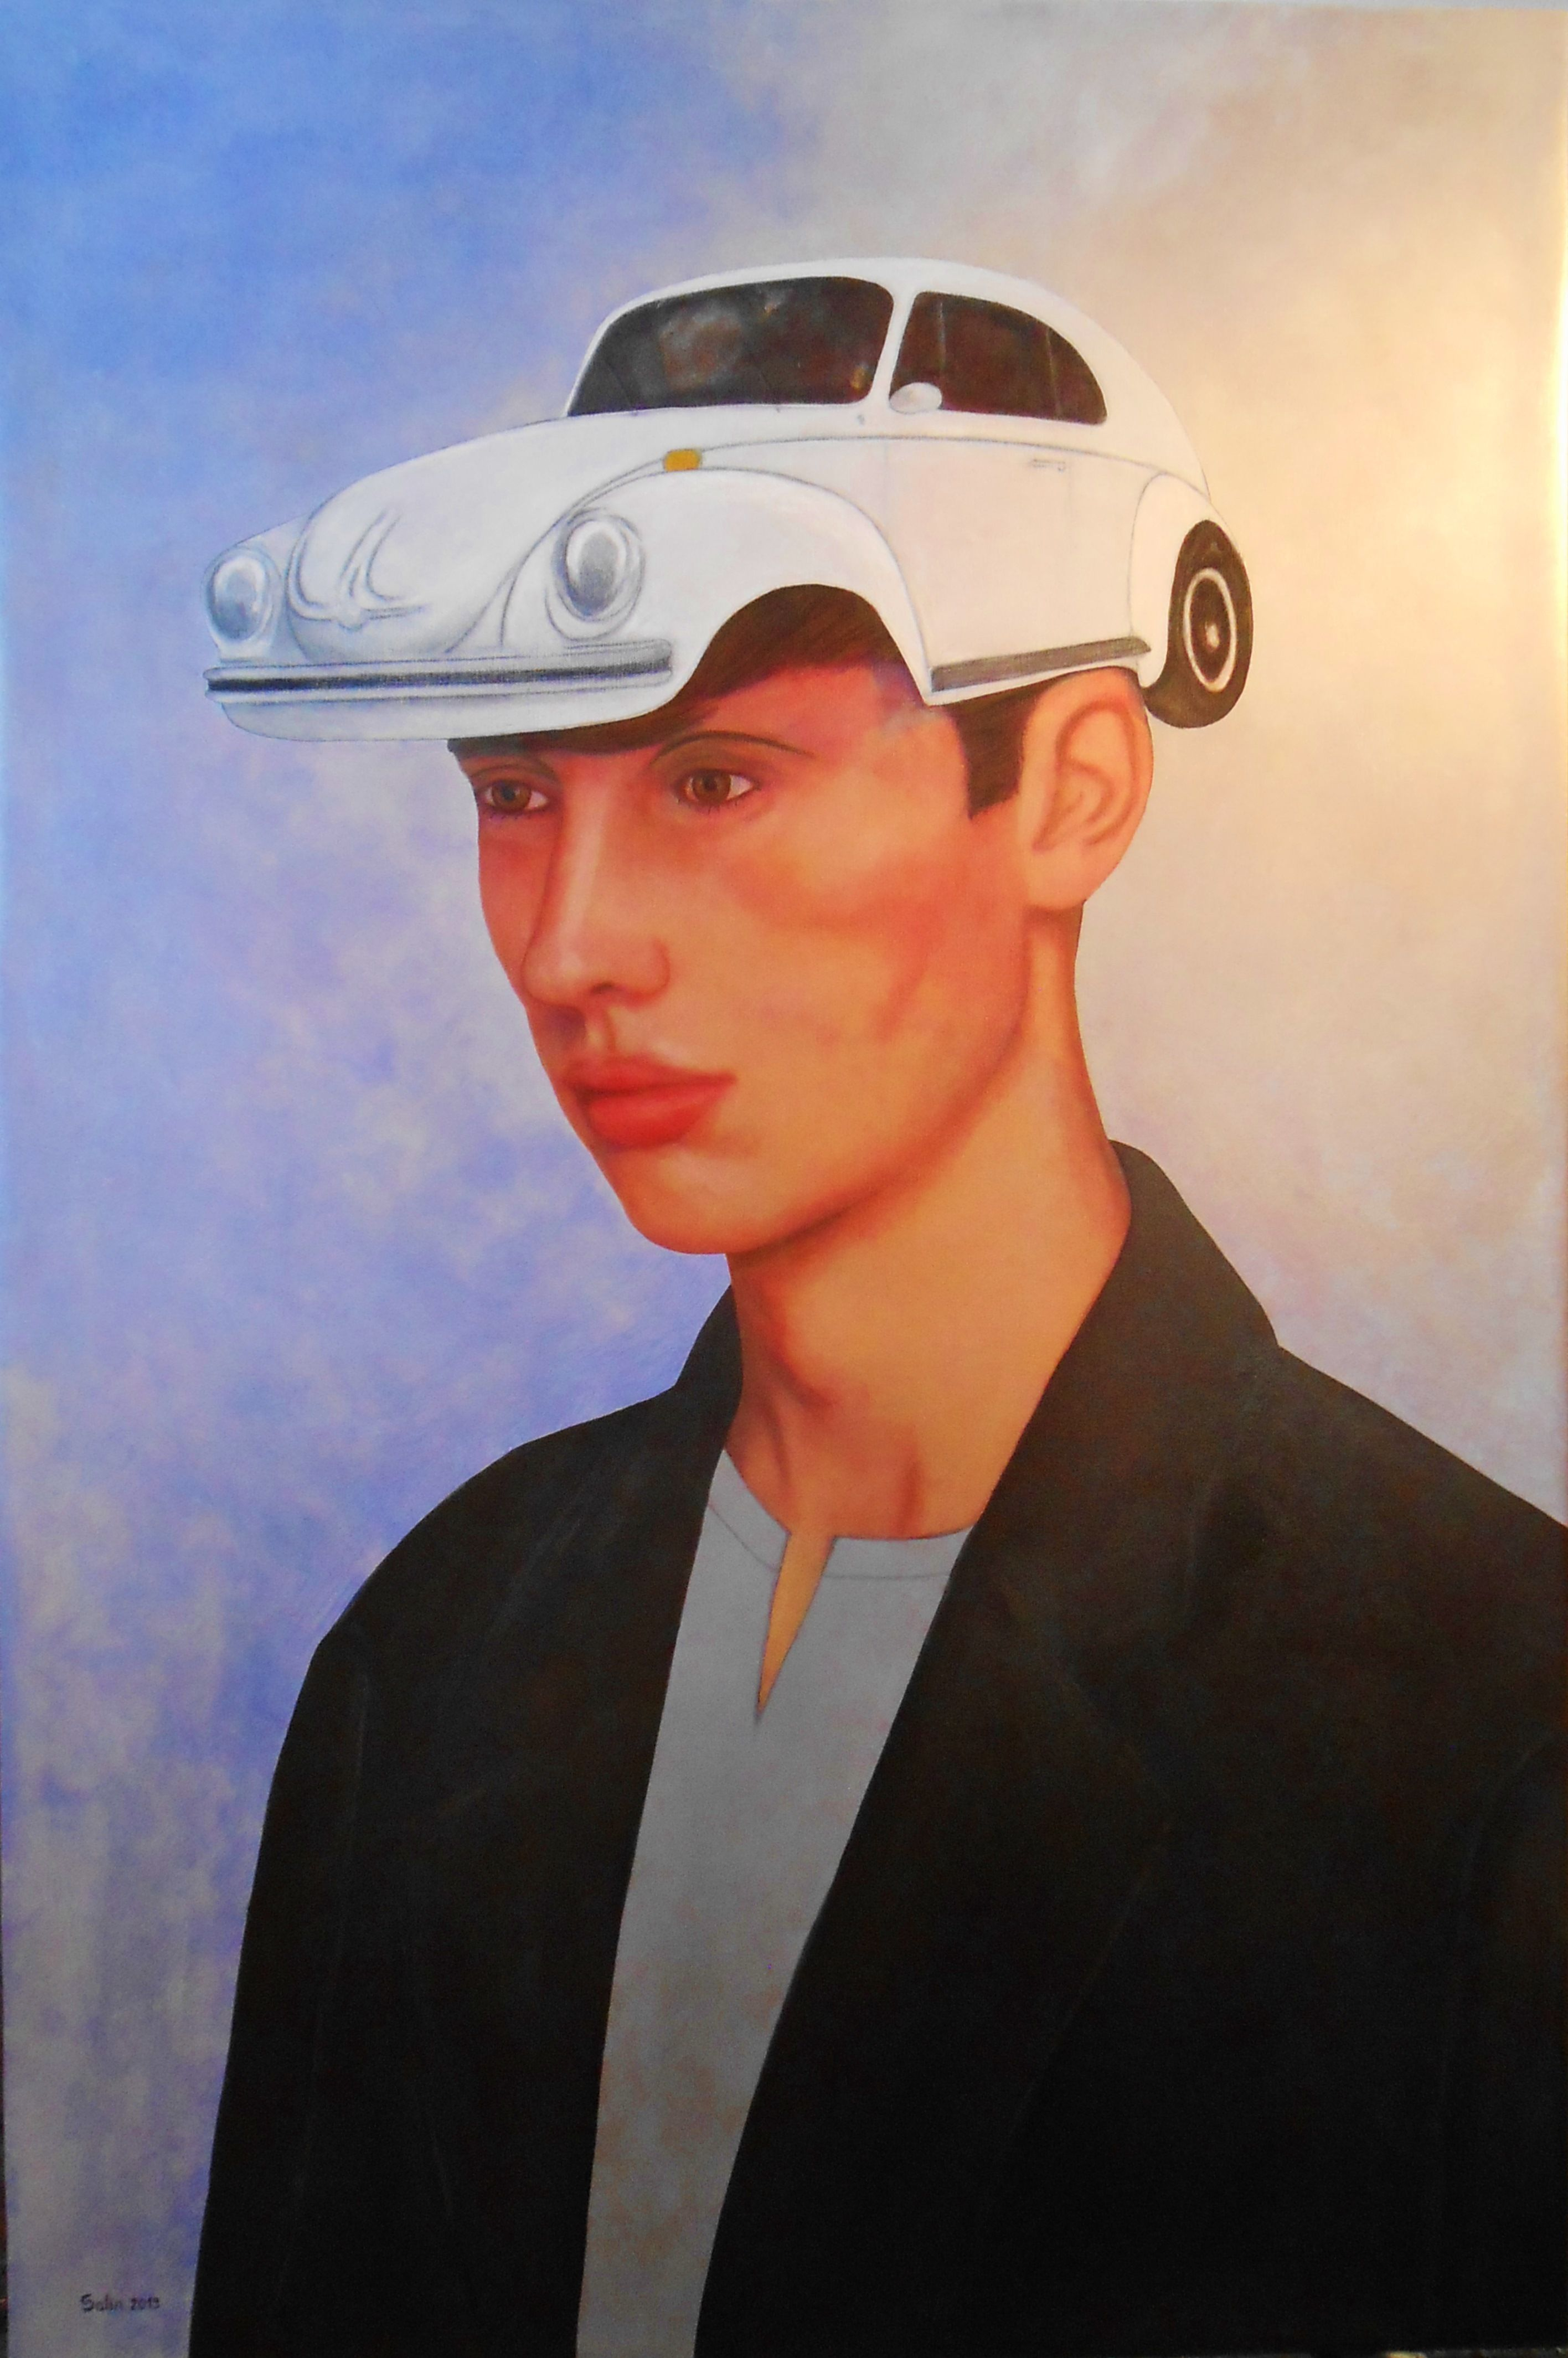 Guy with cap